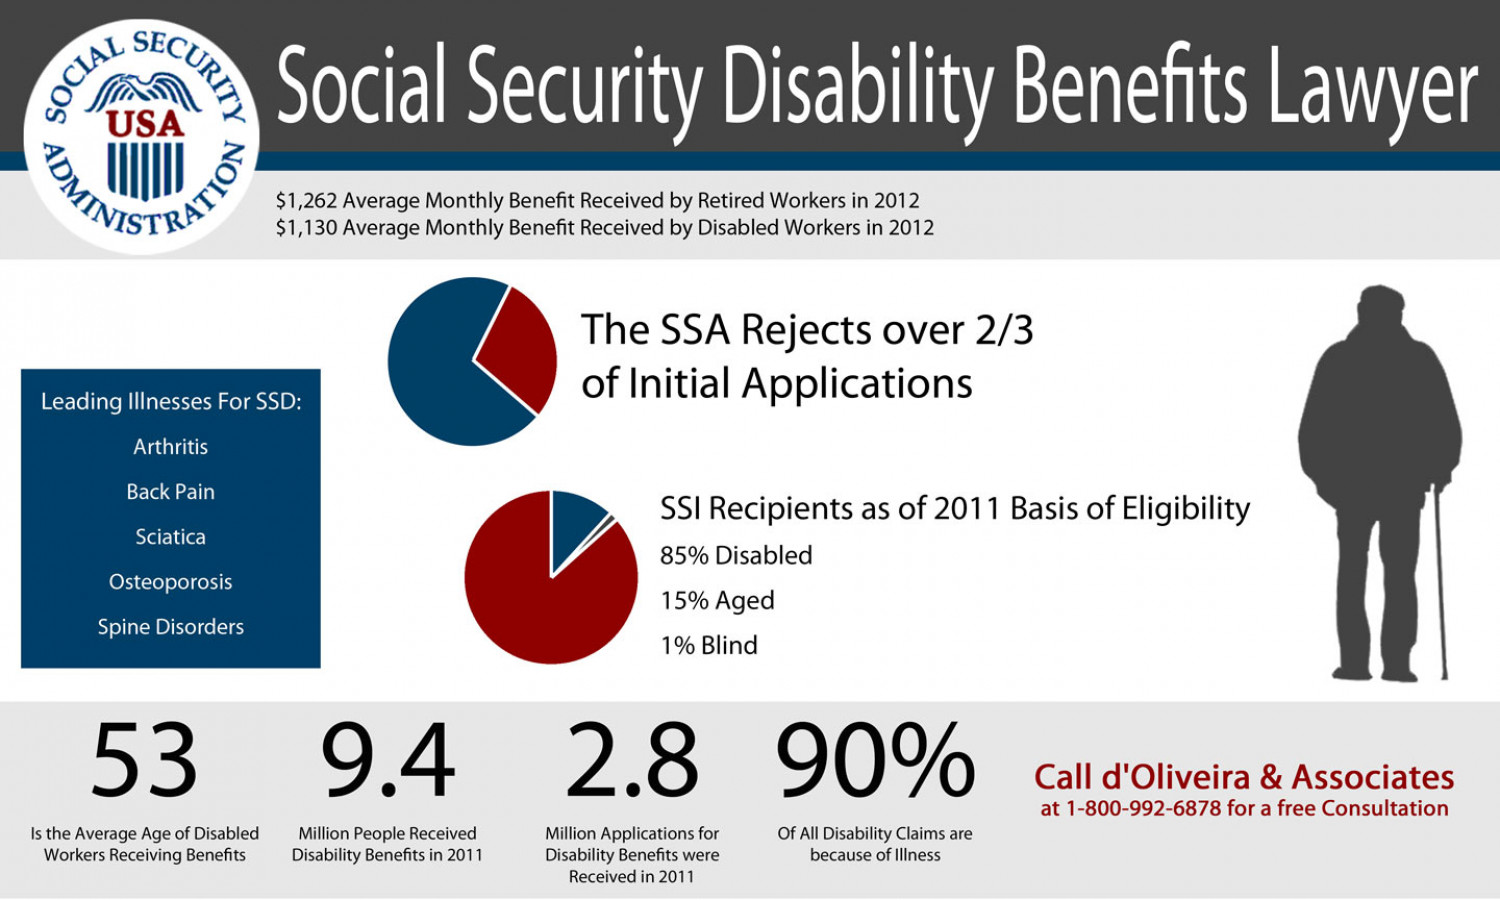 Social Security Disability Benefits Lawyer